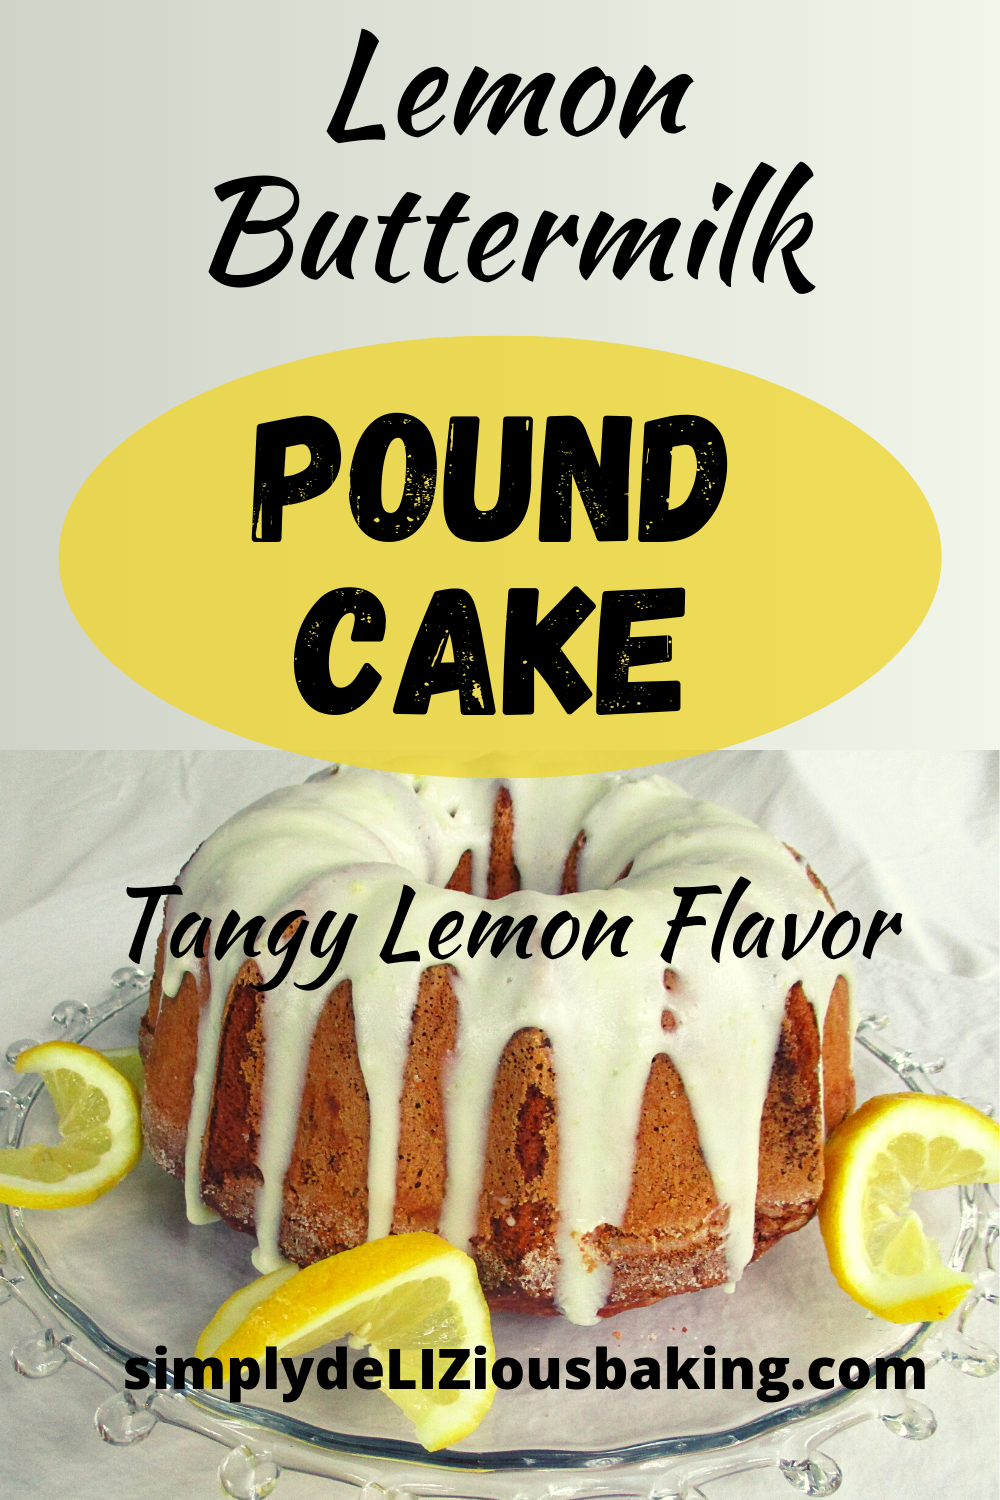 Easy Southern Lemon Pound Cake Simply Delizious Baking Recipe In 2020 Lemon Desserts Lemon Buttermilk Pound Cake Best Lemon Dessert Recipe